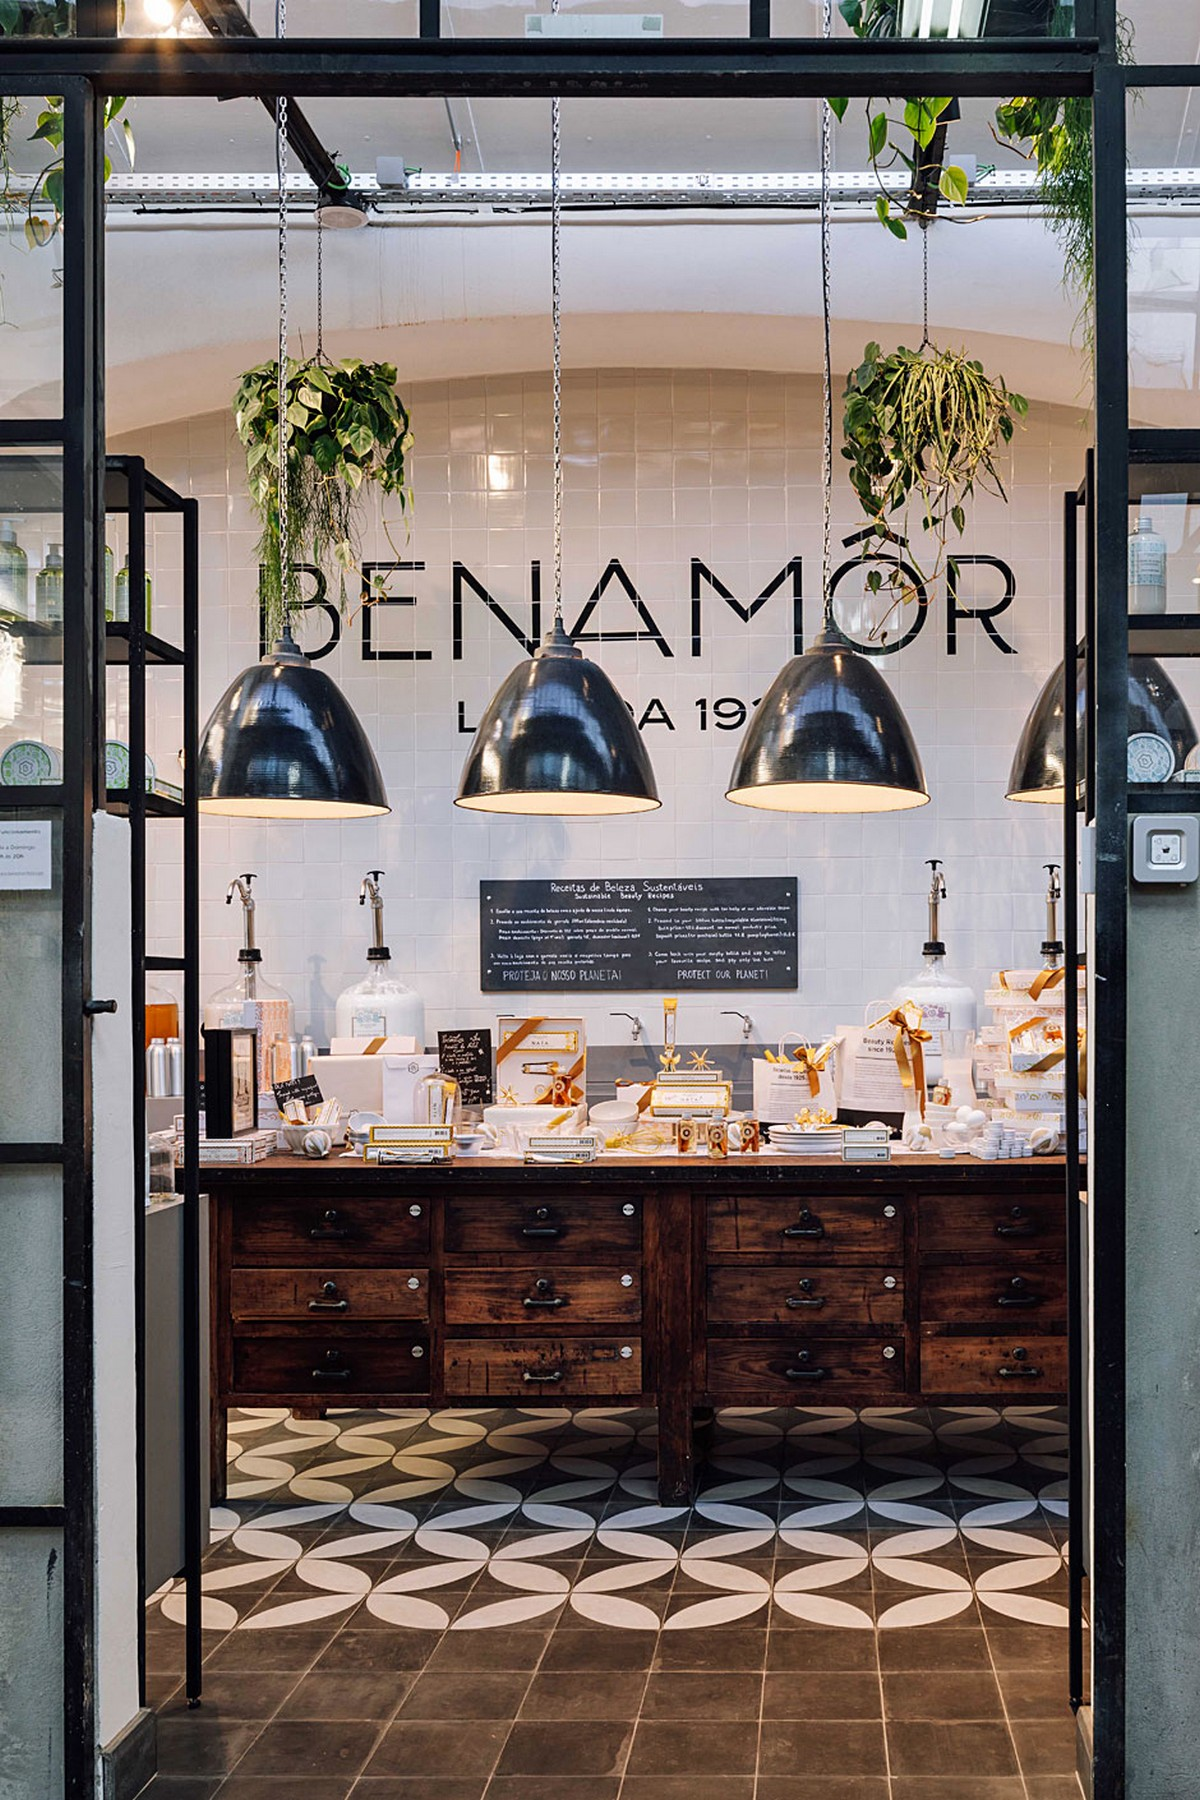 Benamôr The Iconic Portuguese Brand Has a New Store in Lisbon benamôr Benamôr: The Iconic Portuguese Brand Has a New Store in Lisbon Benam  r The Iconic Portuguese Brand Has a New Store in Lisbon 3